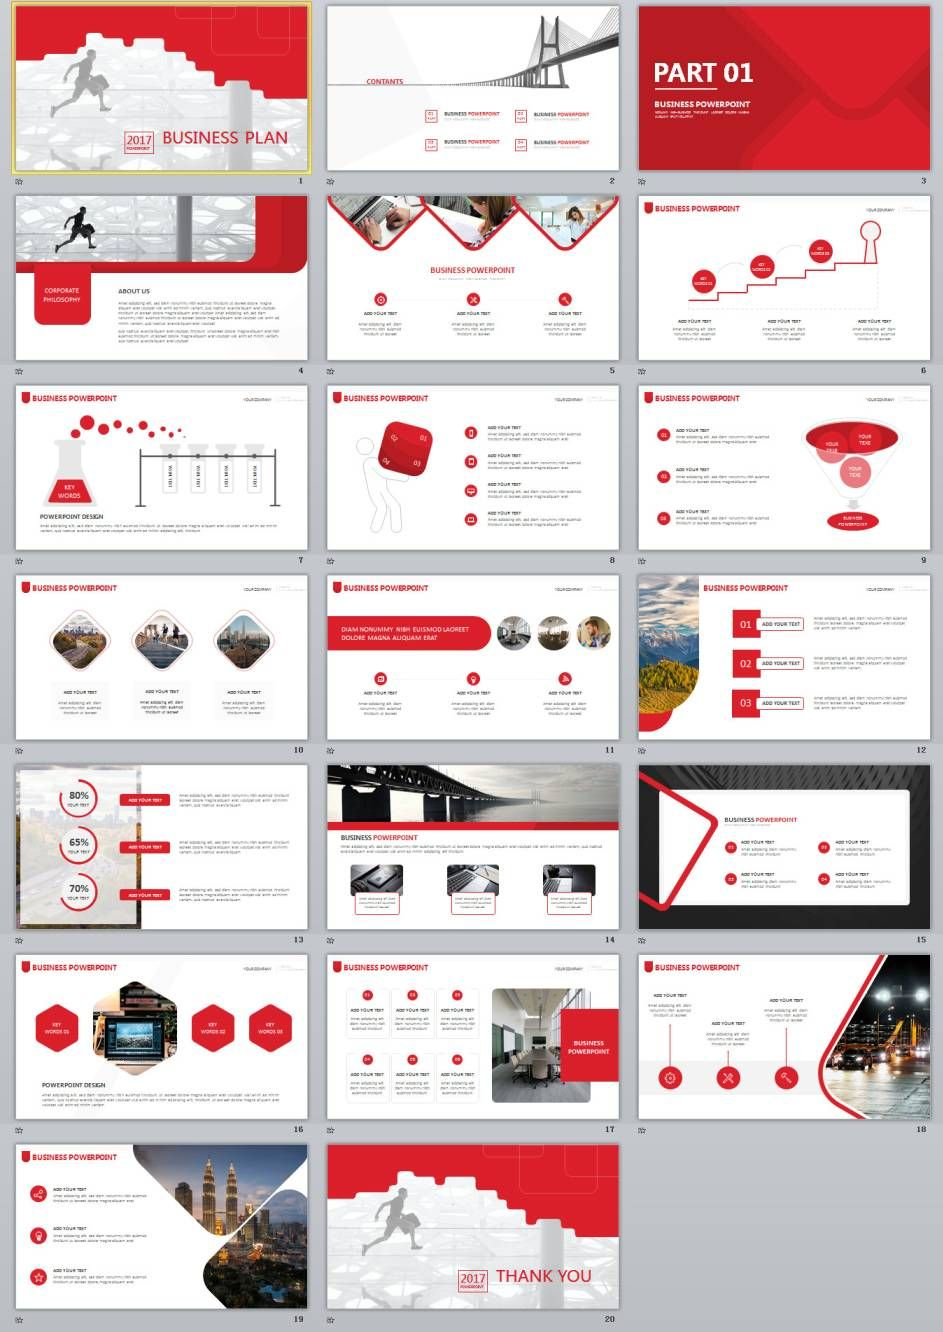 2017 business plan powerpoint template the highest quality 2017 business plan powerpoint template the highest quality powerpoint templates and keynote templates download flashek Choice Image